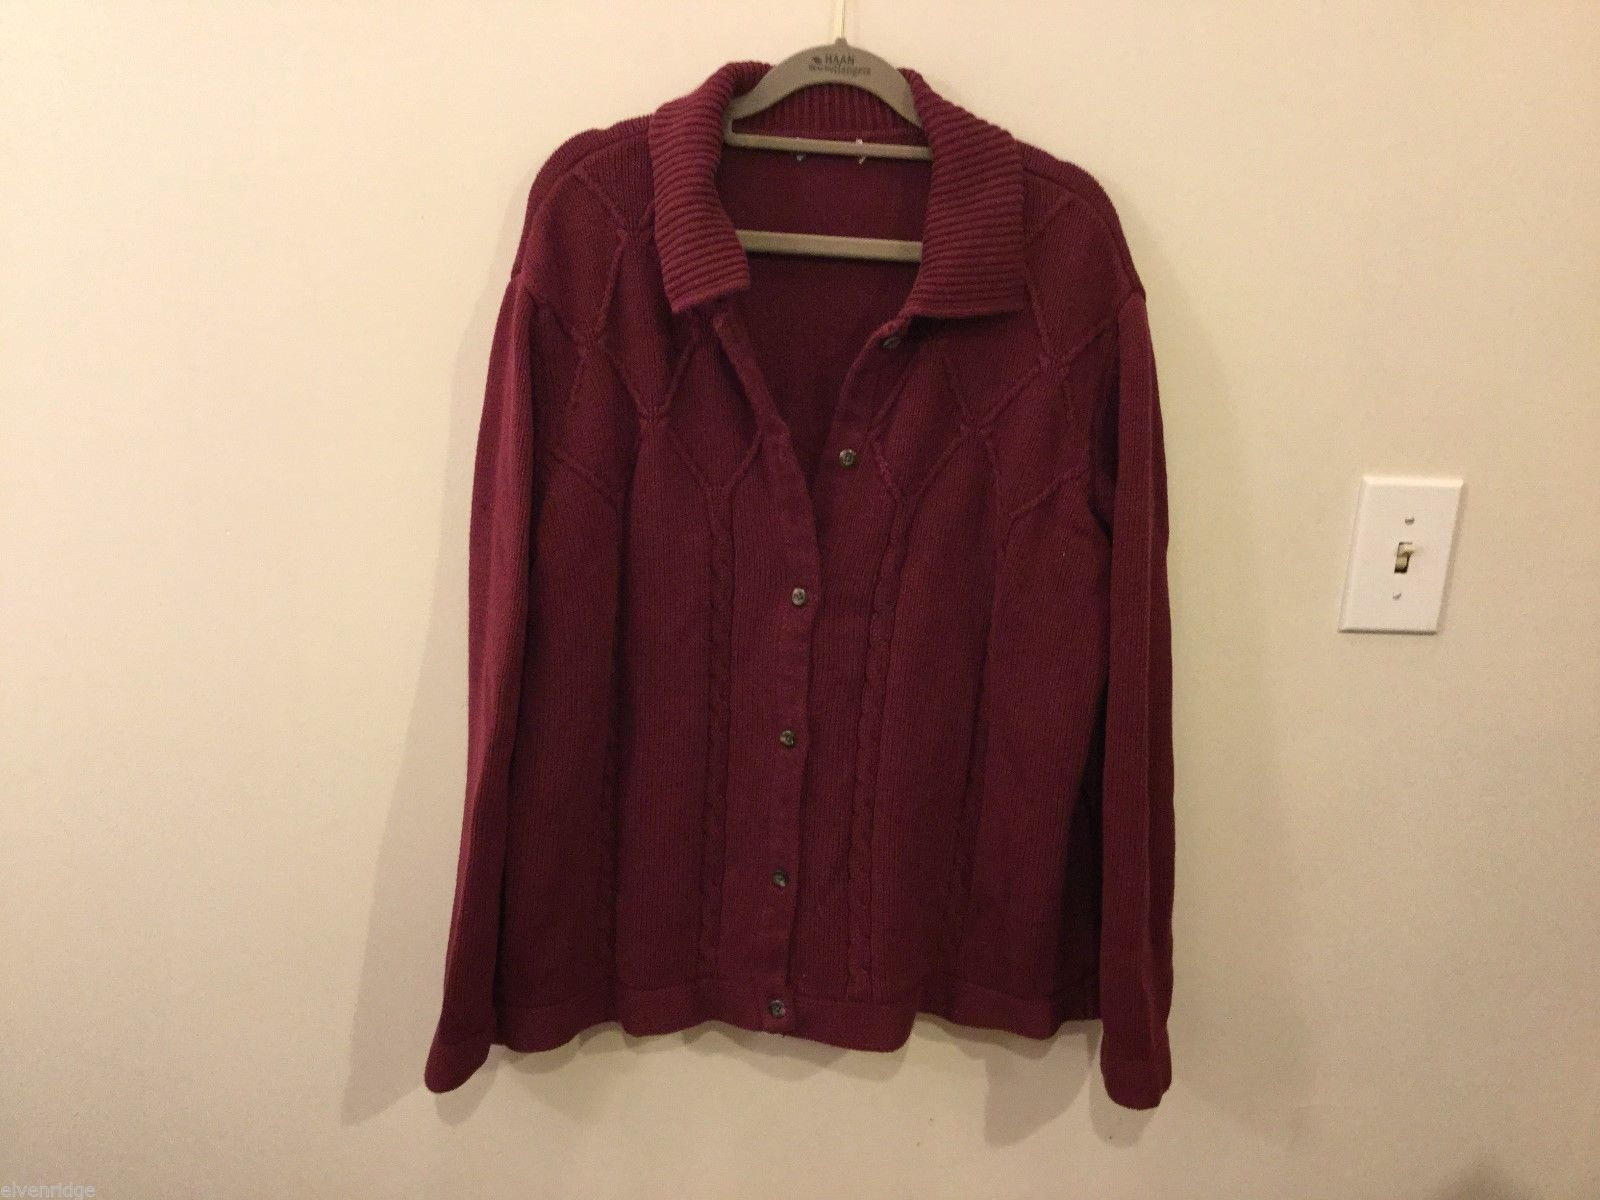 Unisex Burgandy Thick Cardigan Sweater, See measurements for size